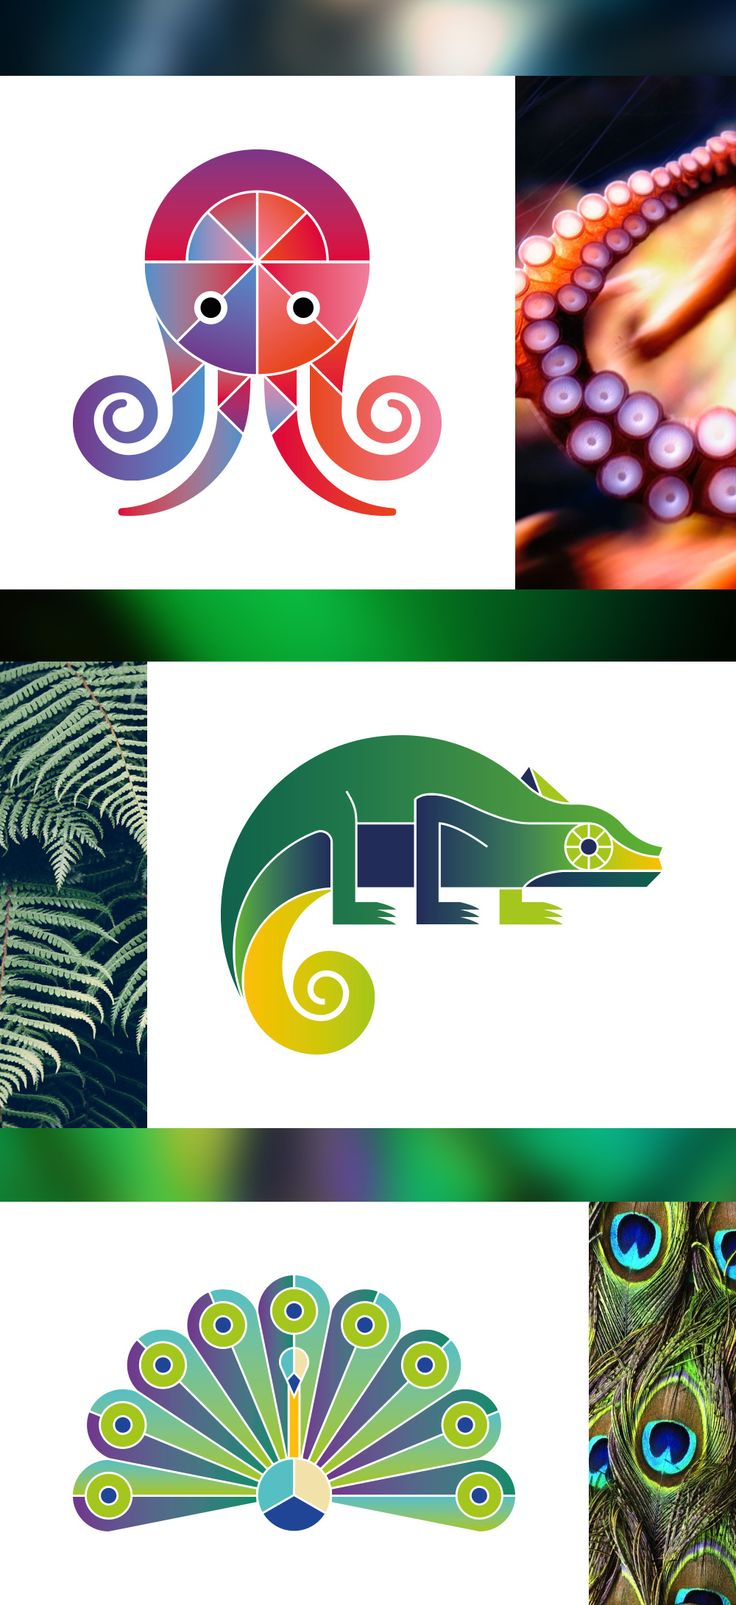 Logos, animaux, pieuvre, octopus, caméléon, chameleon, paon, peacock, agence communication, graphiste www.ehopdesign.fr